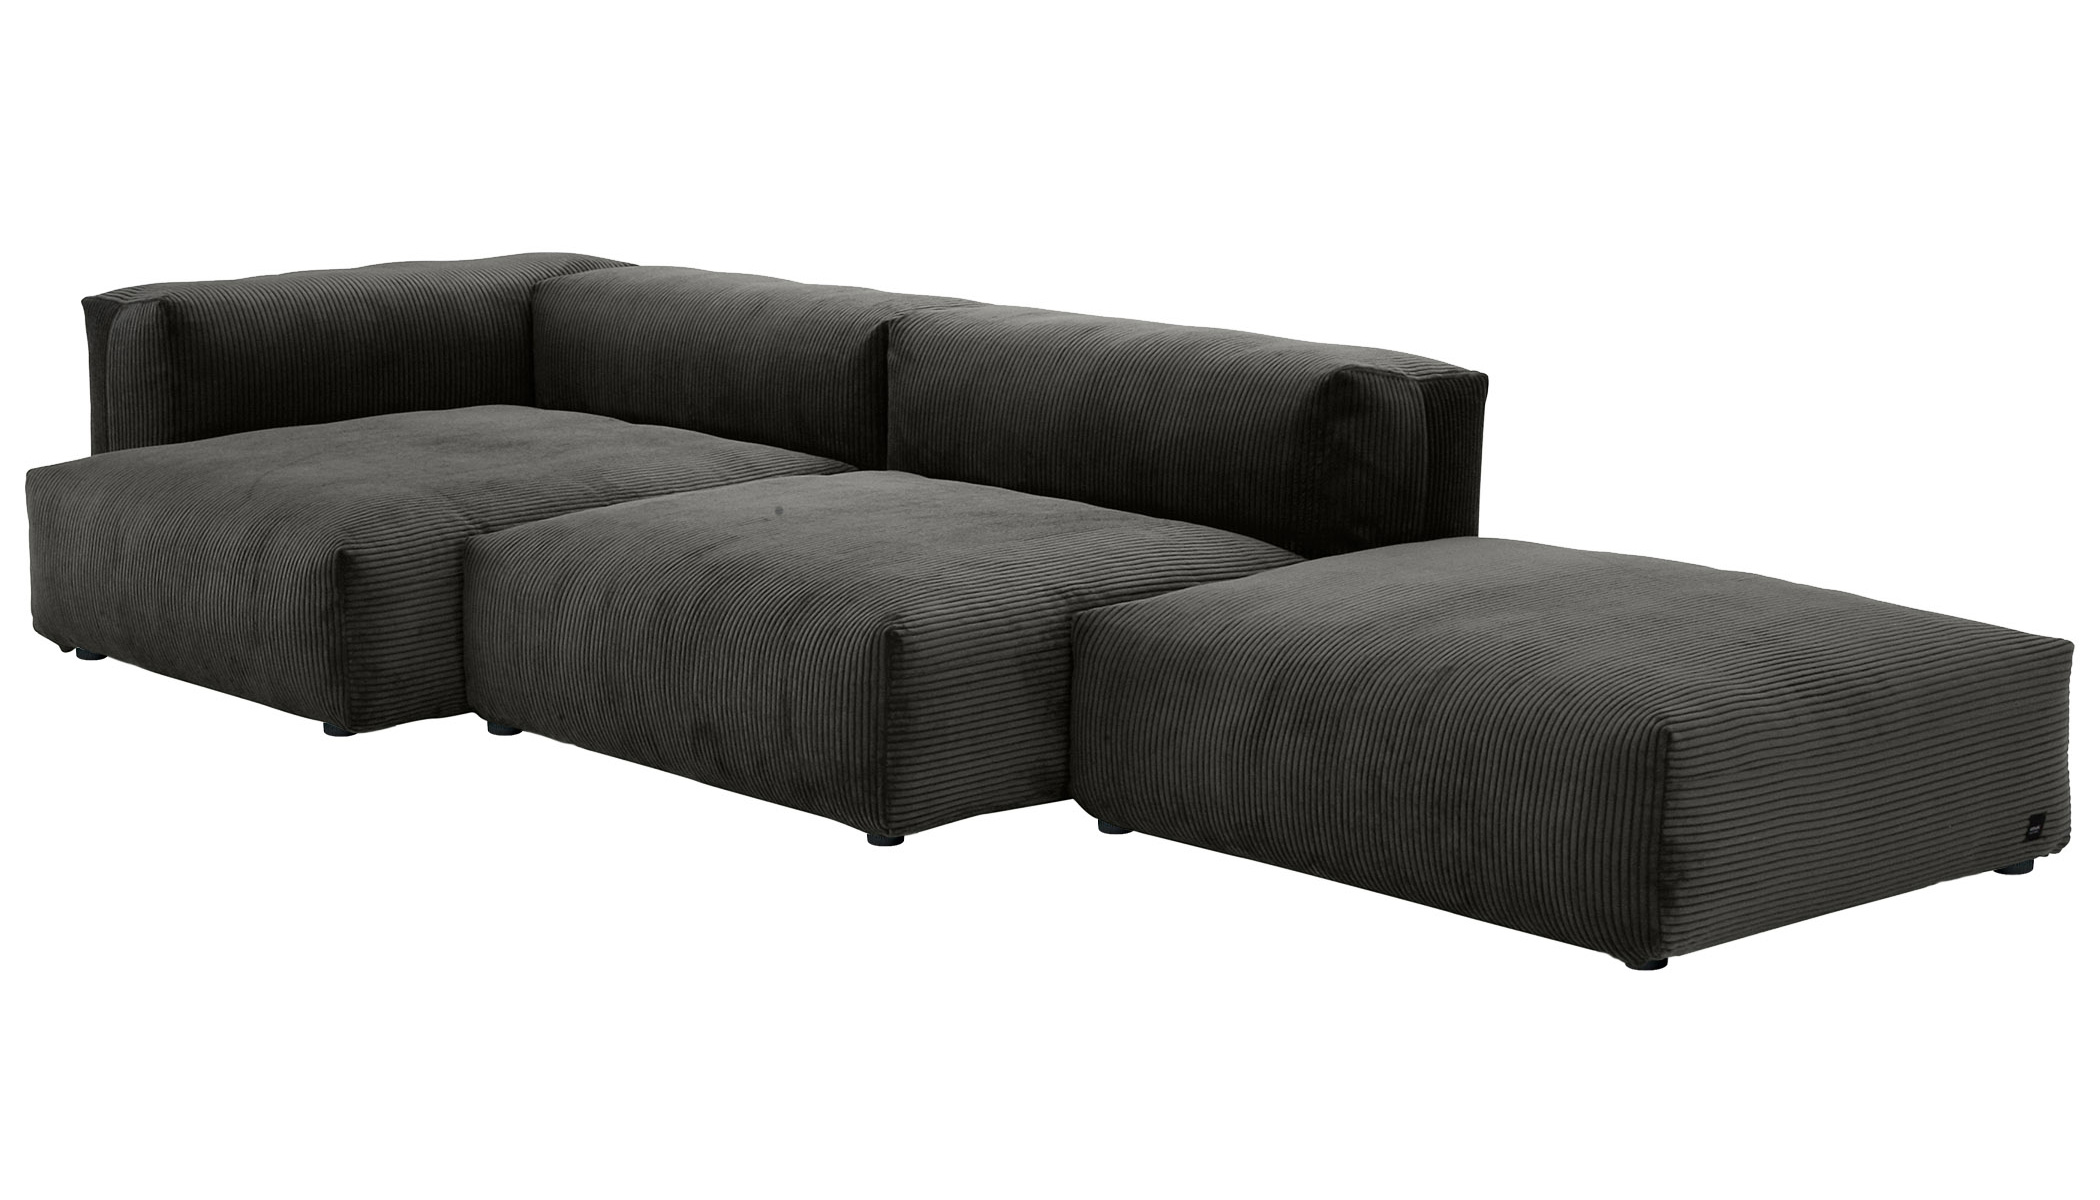 Sofa 1 Large 2 Medium 3 Side  Cord Velours dark grey